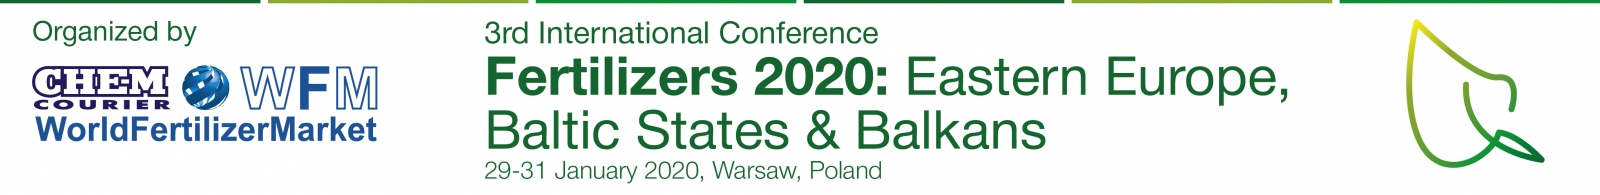 Fertilizers 2020: Eastern Europe, Baltic States  and Balkans. Warsaw, Poland